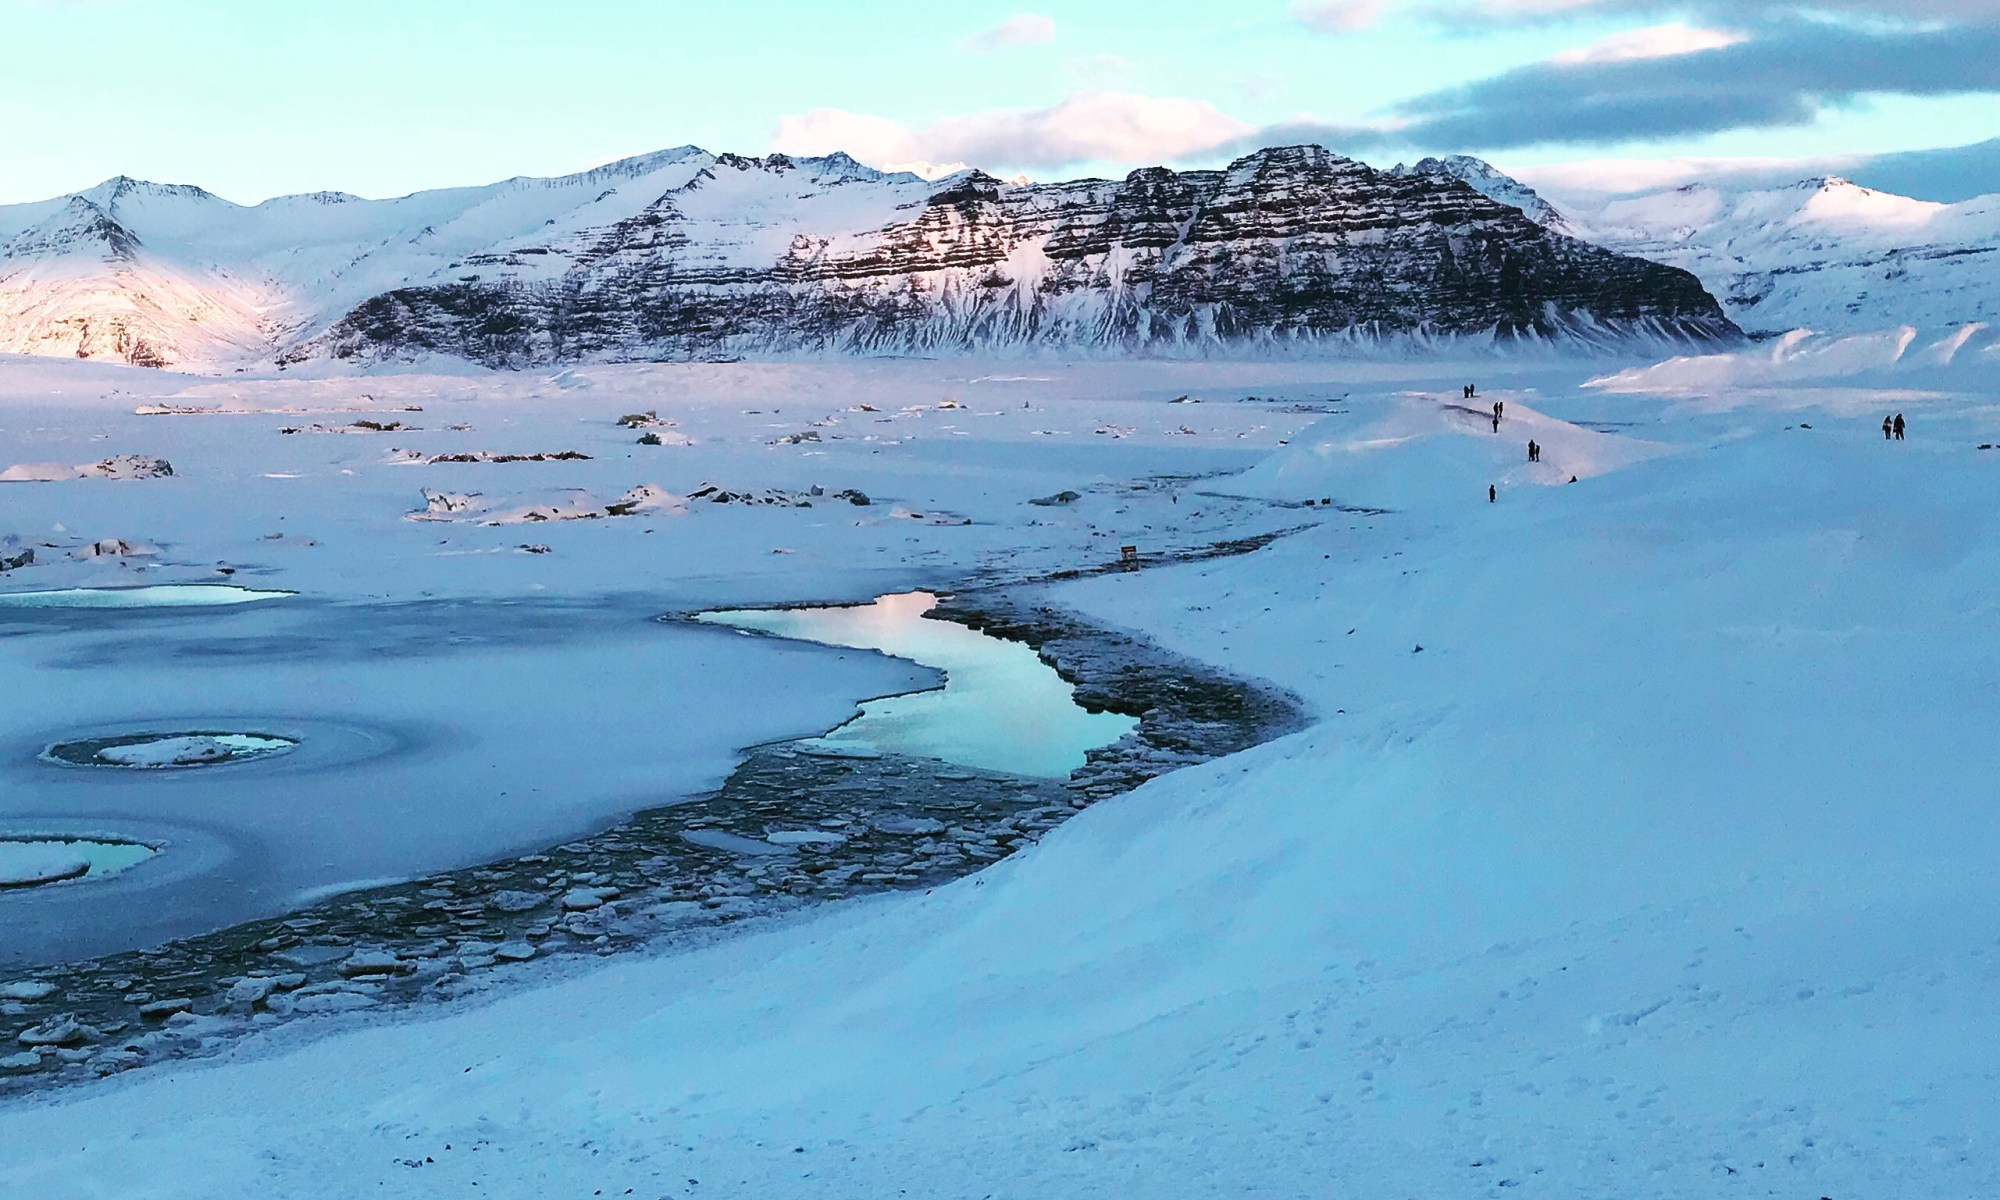 Photo of a river through ice winding its way towards a snowy mountain